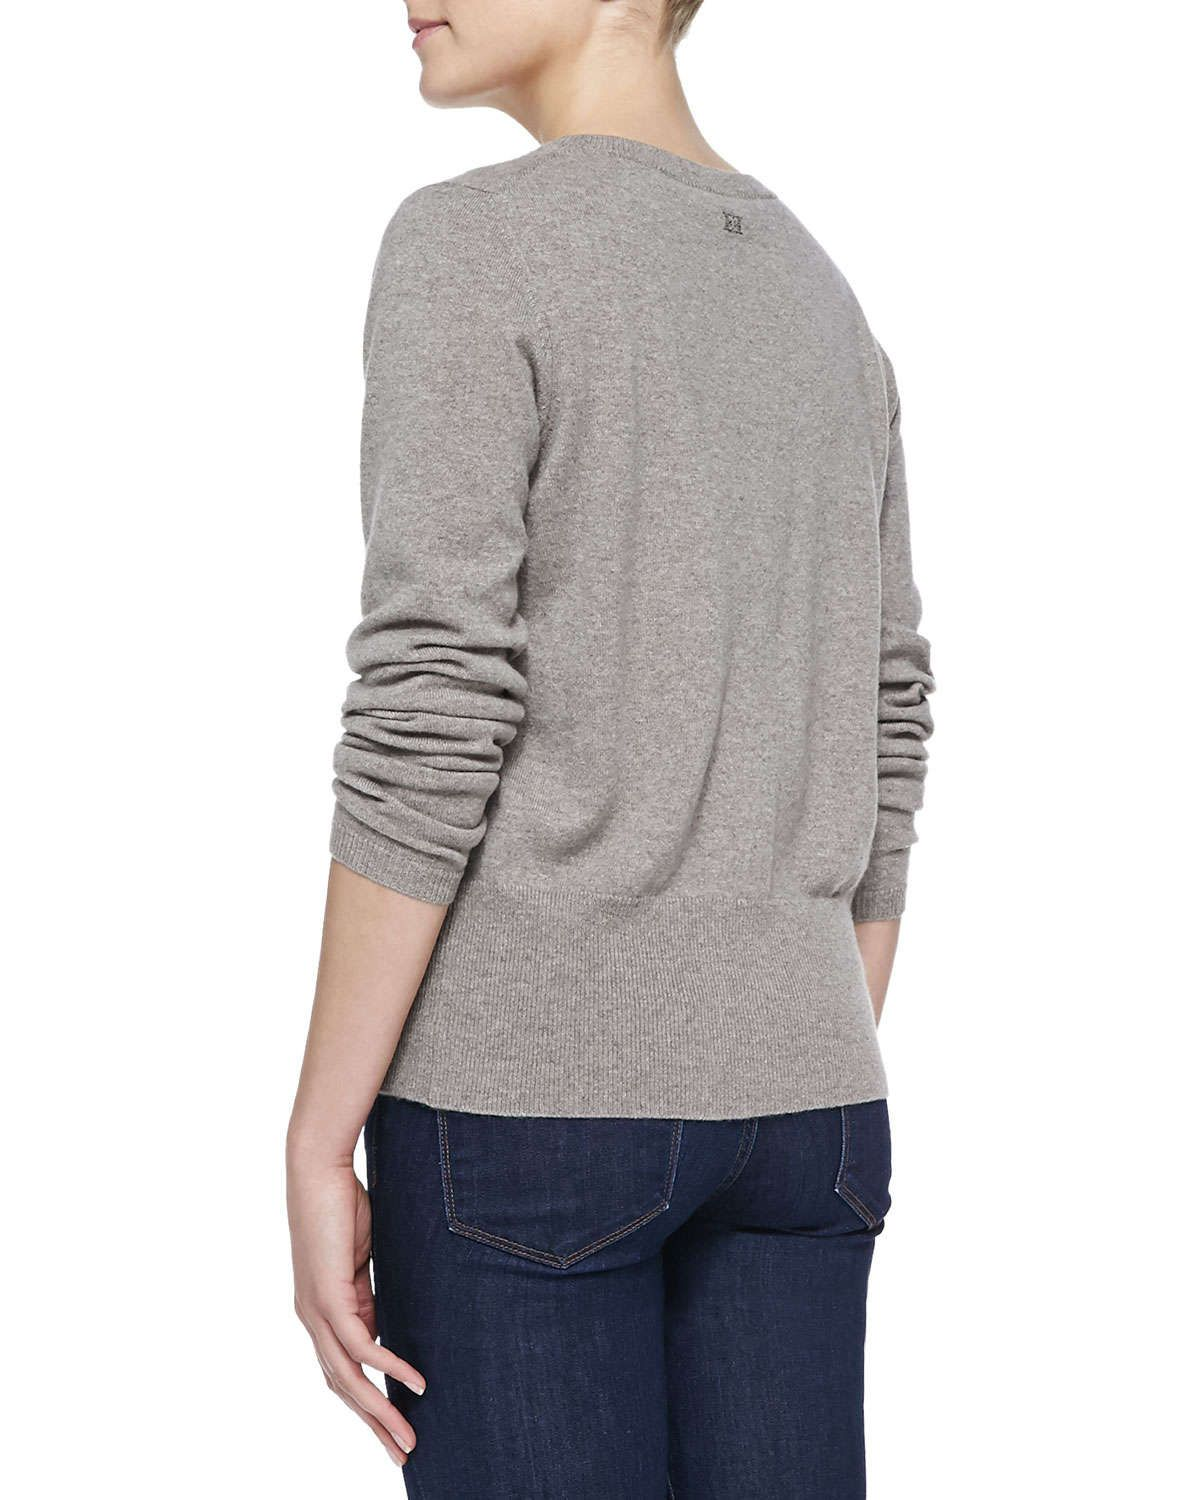 Button-Front Cashmere Cardigan, Taupe | Products | Pinterest ...